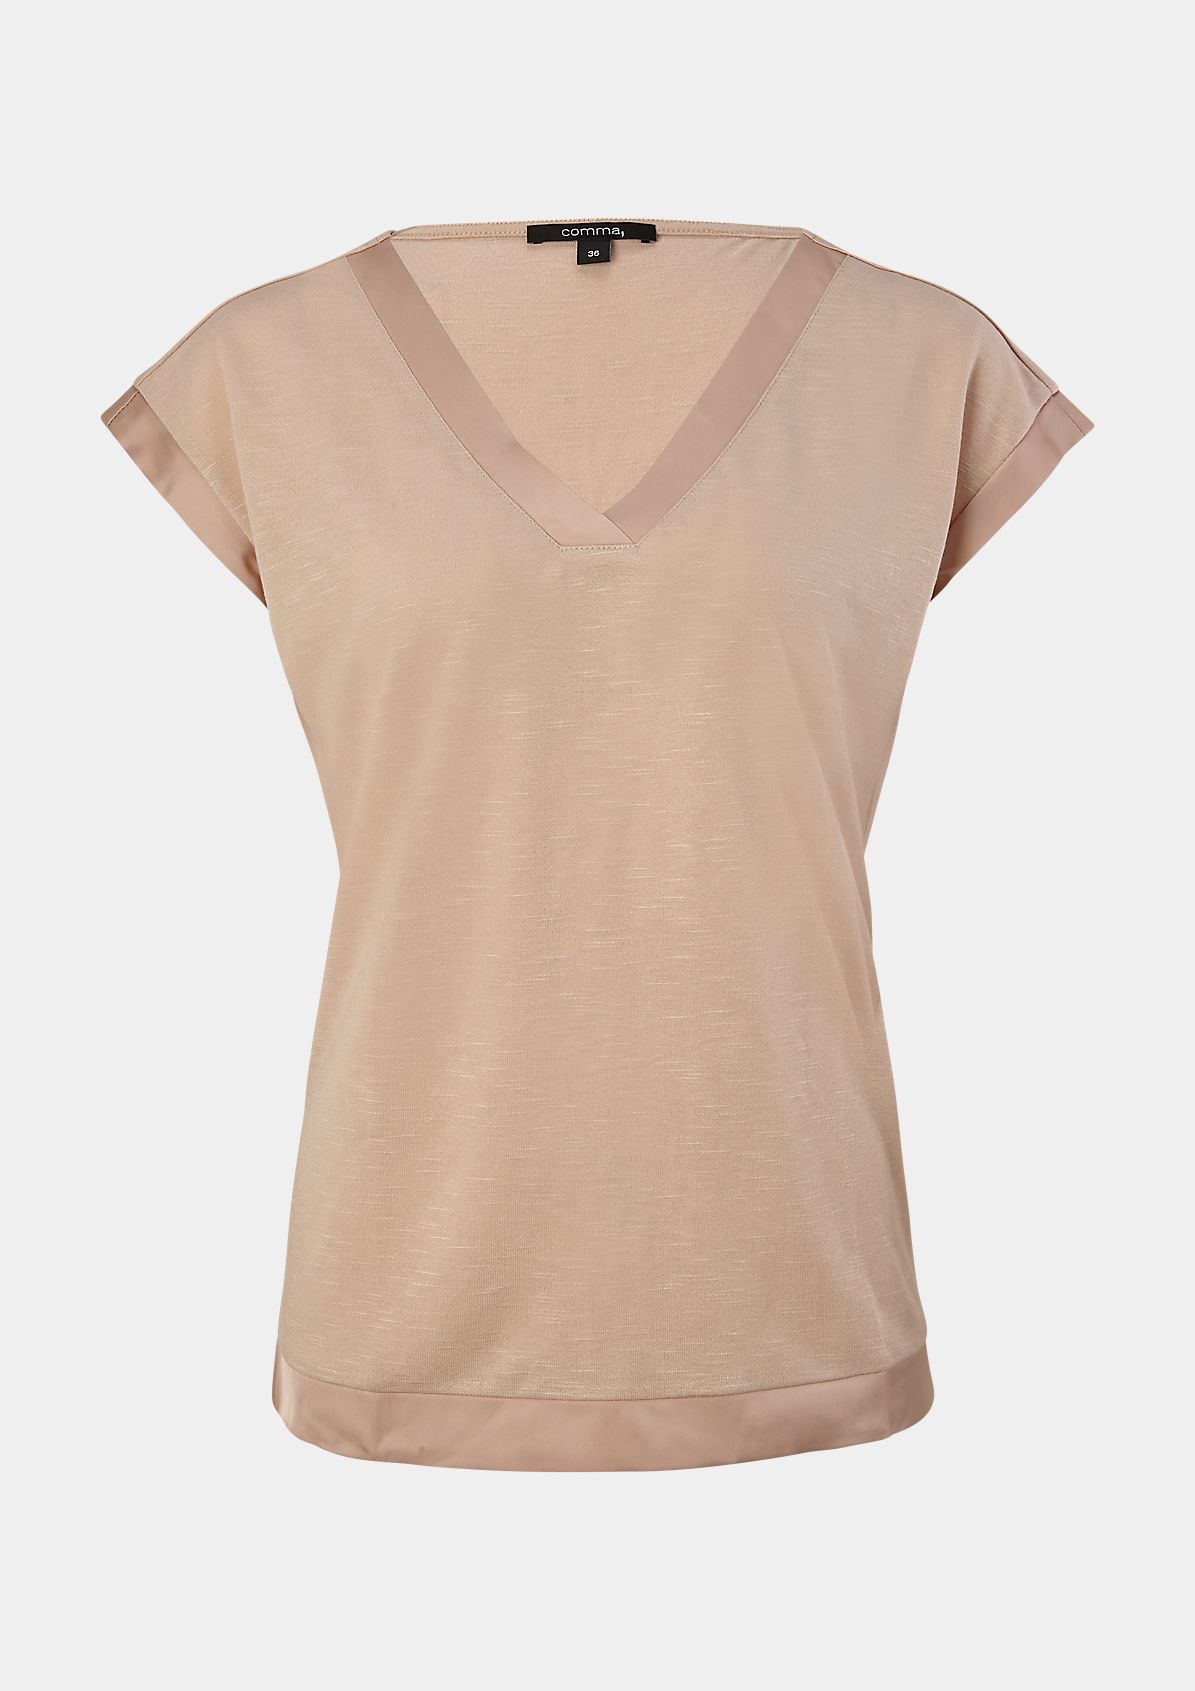 V-neckline top with a satin trim from comma